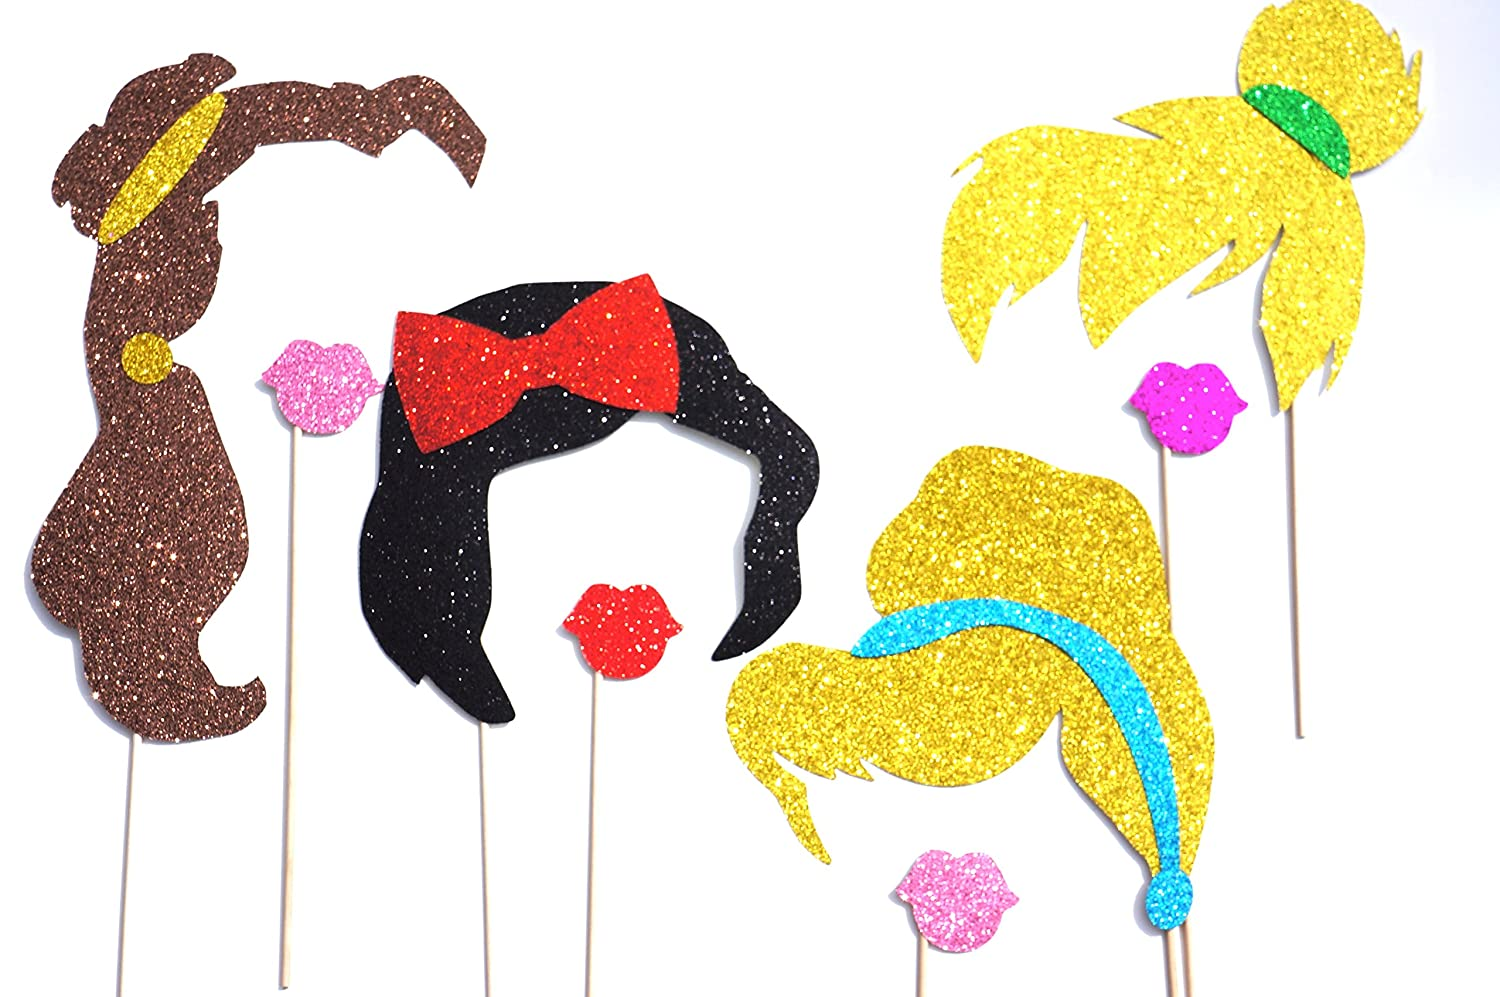 Disney Princess Birthday Party Photo Booth Props on a Stick